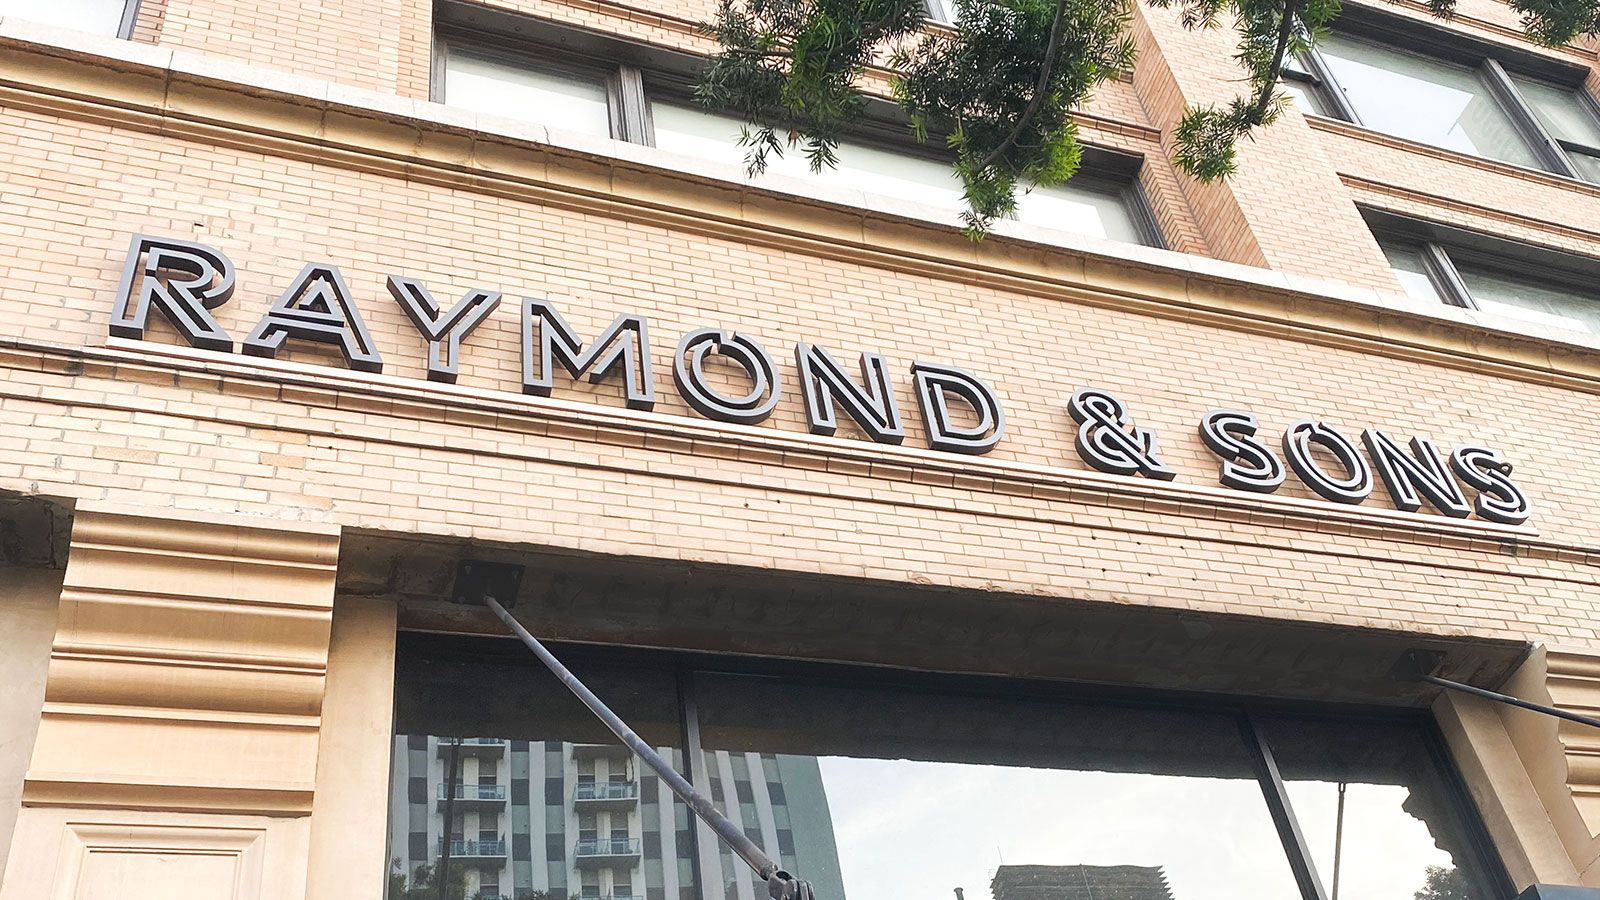 Raymond and Sons 3D letters